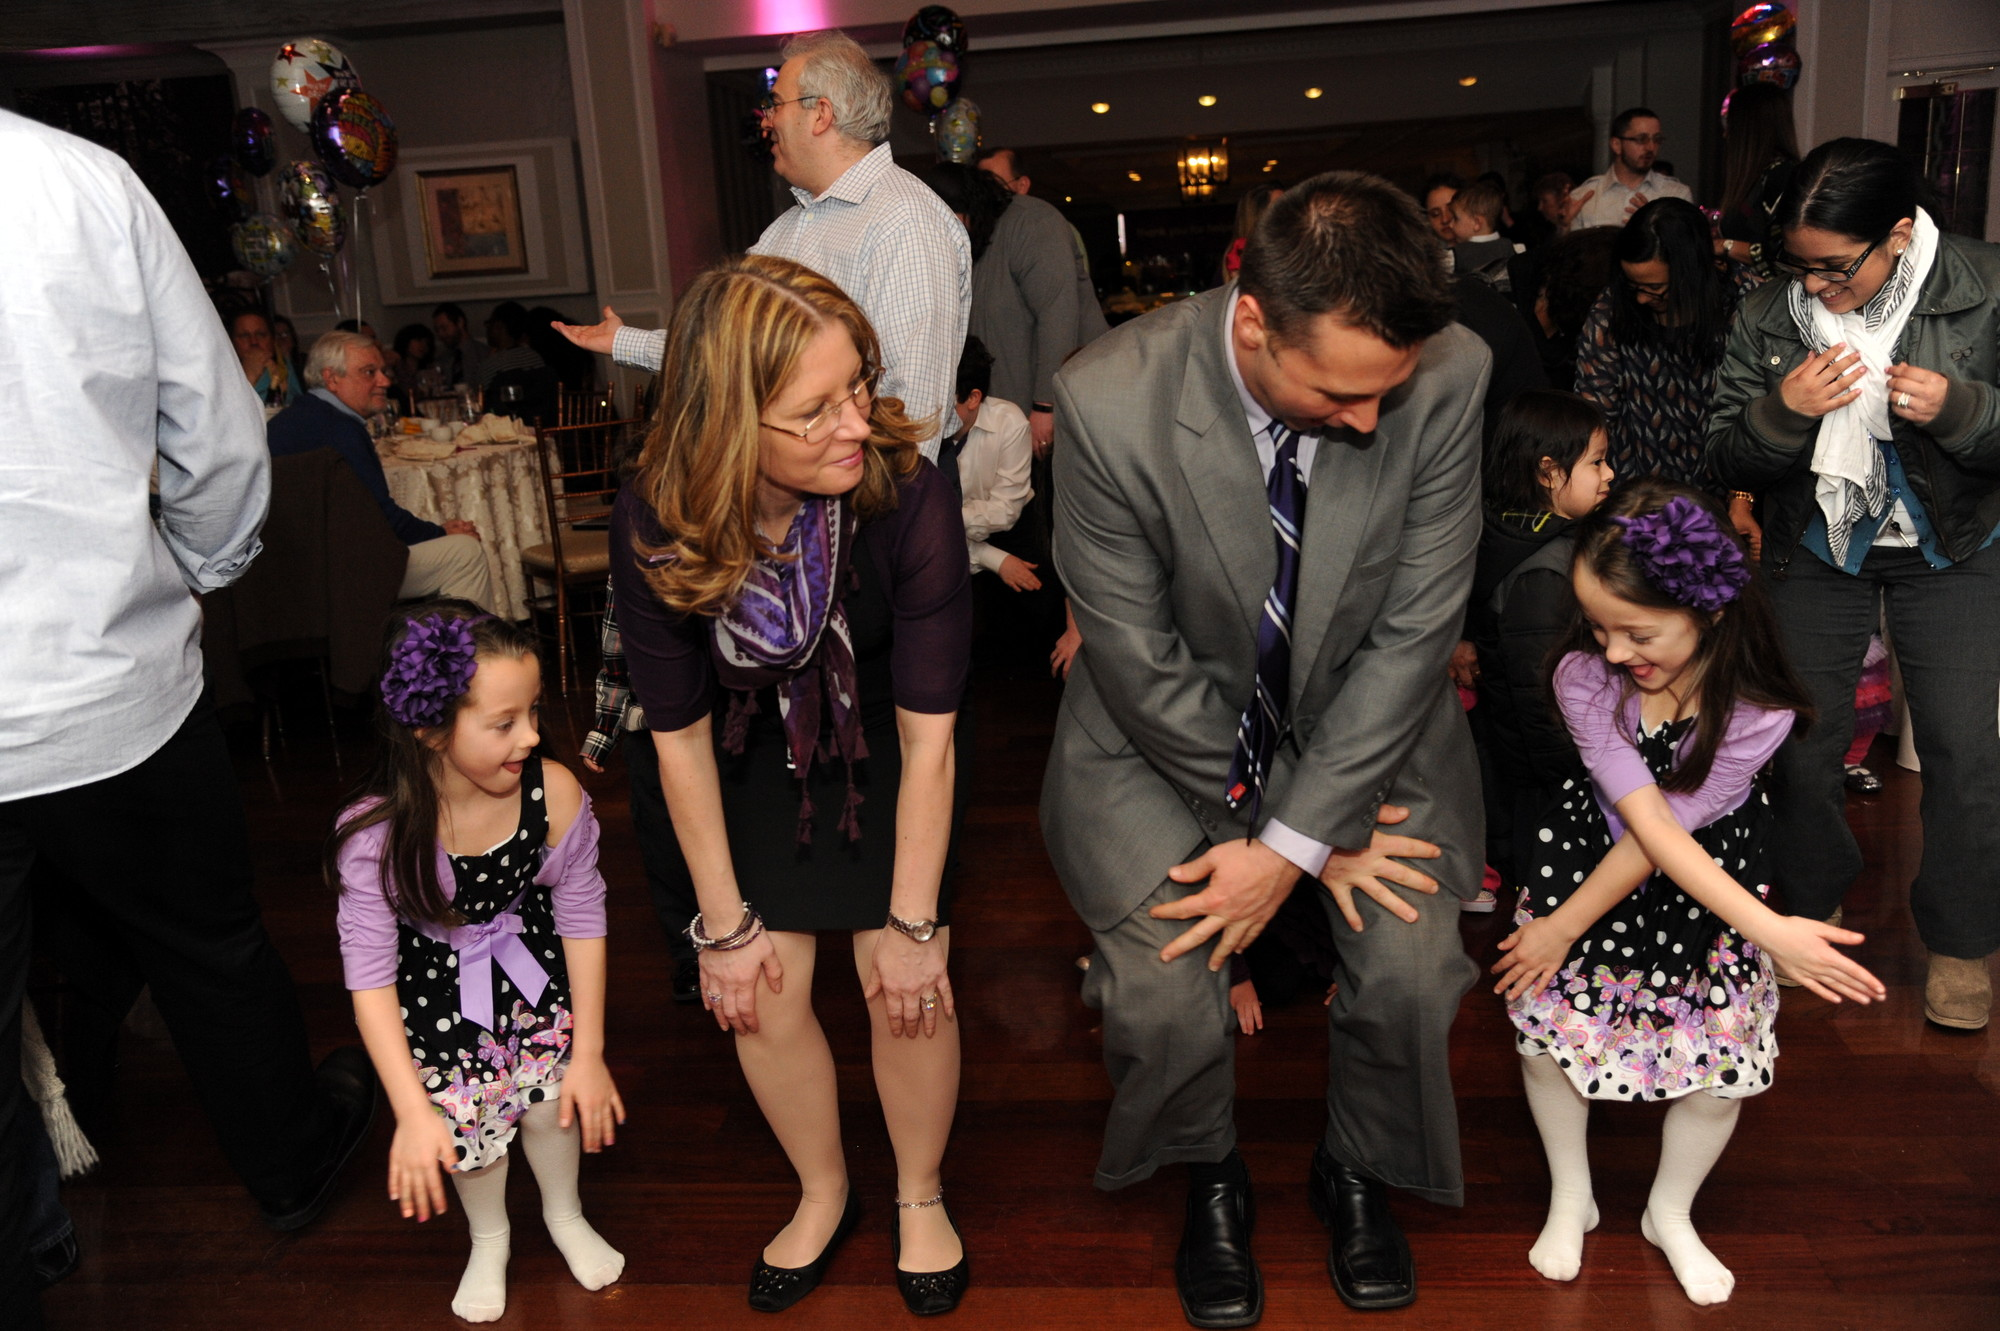 The Rubino family, of North Bellmore, served as the 2013 March of Dimes ambassadors. They danced the night away at the 2014 kickoff event.